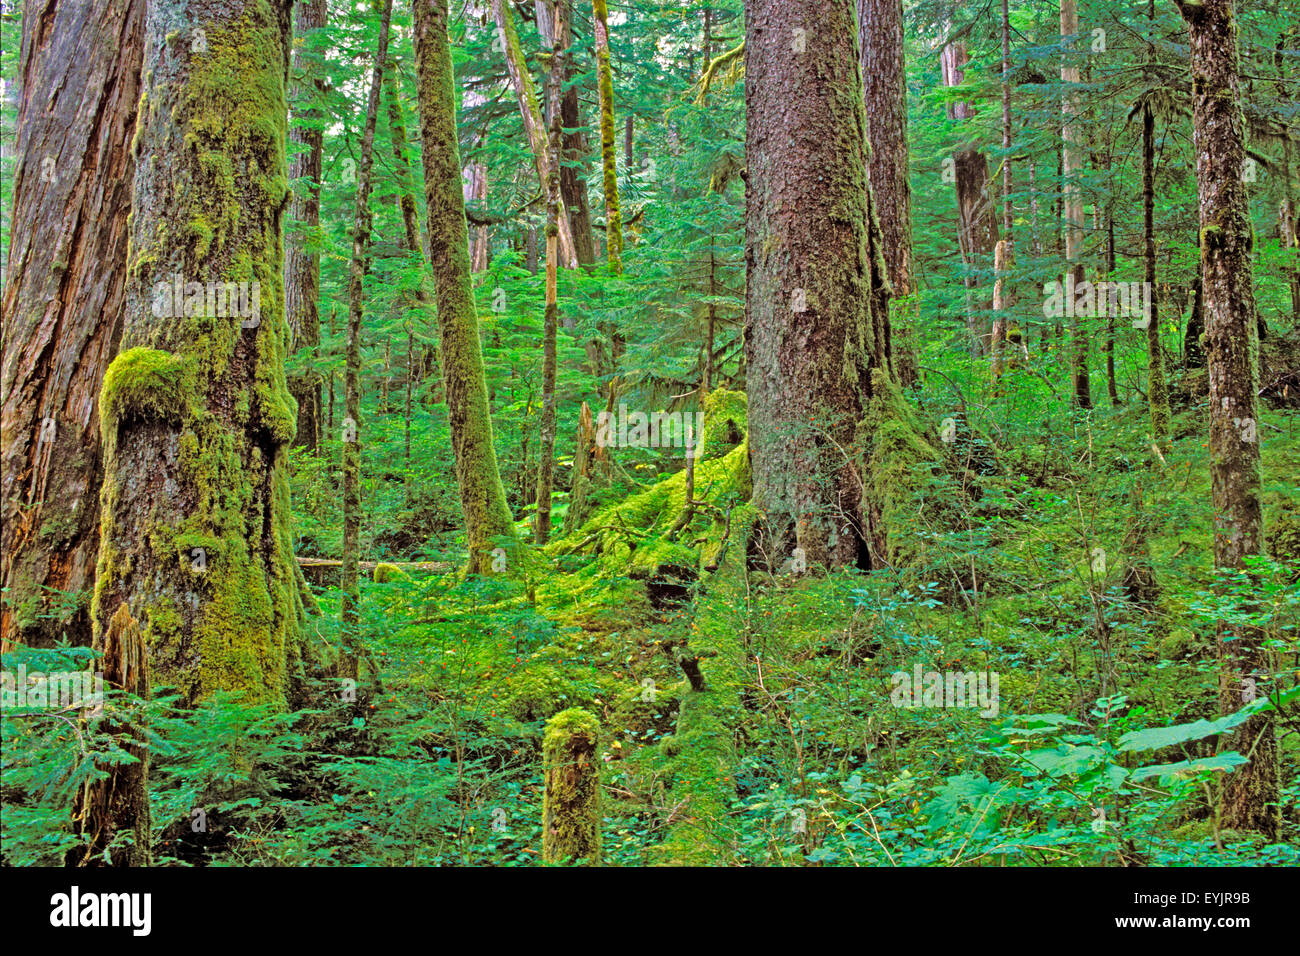  Old growth temperate Rainforest's, West coast British Columbia - Stock Image